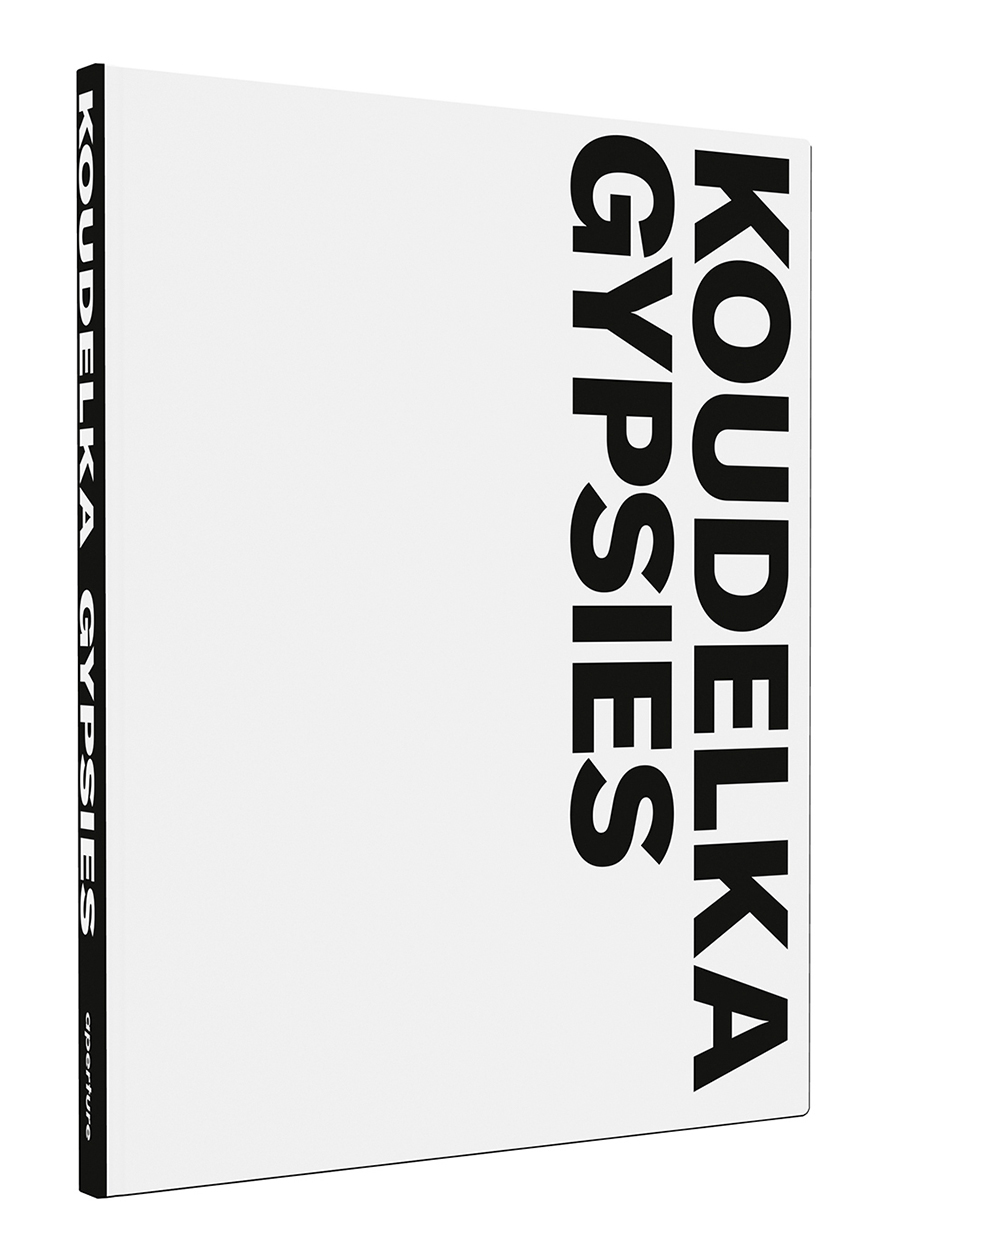 The cover of Josef Koudelka: Gypsies